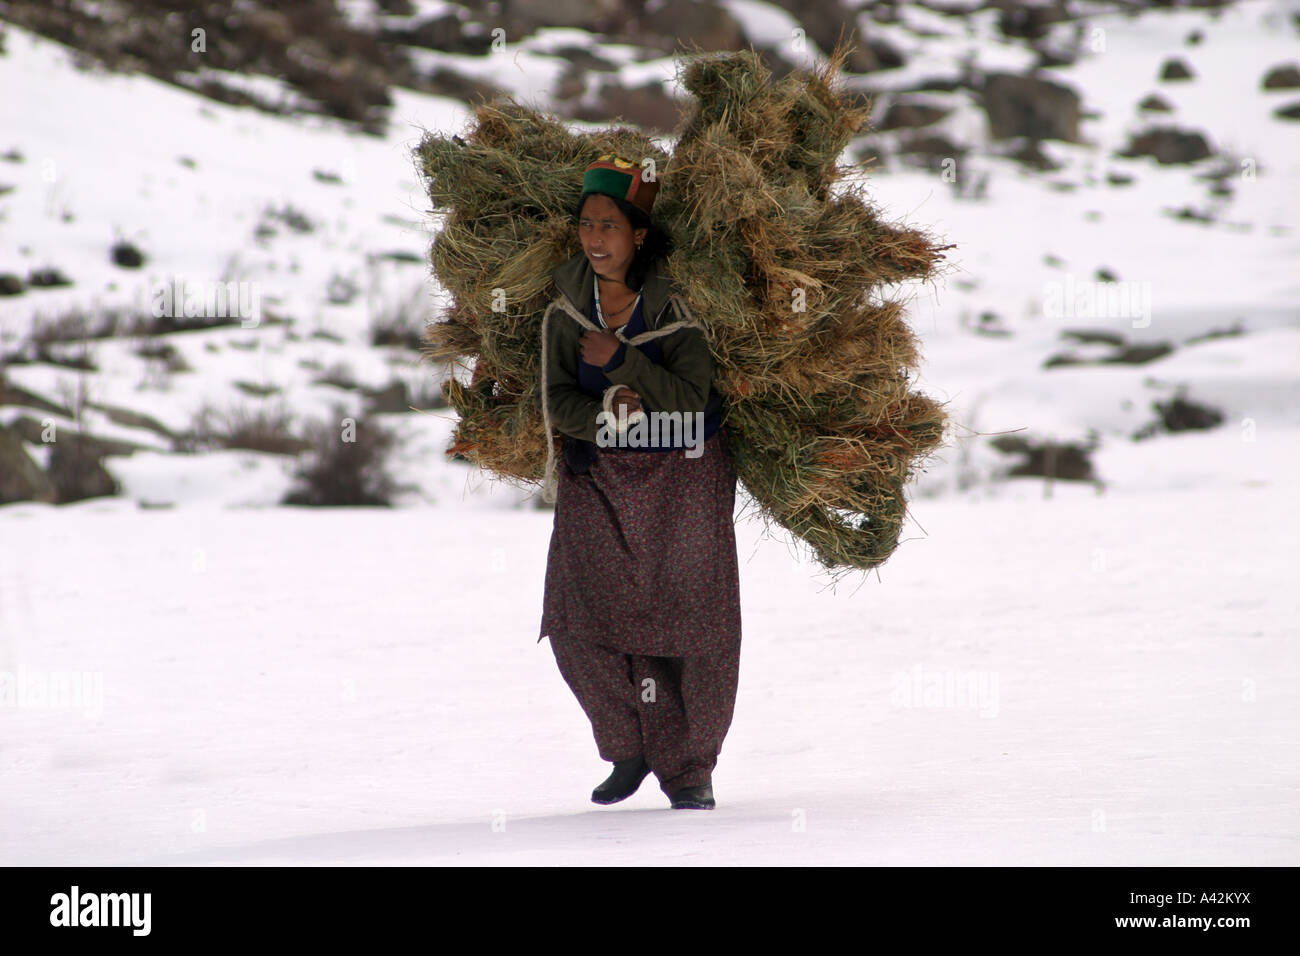 Villagers carry fodder for their cattle on their shoulders in extreme winters in village Chitkul, Himachal Pradesh - Stock Image